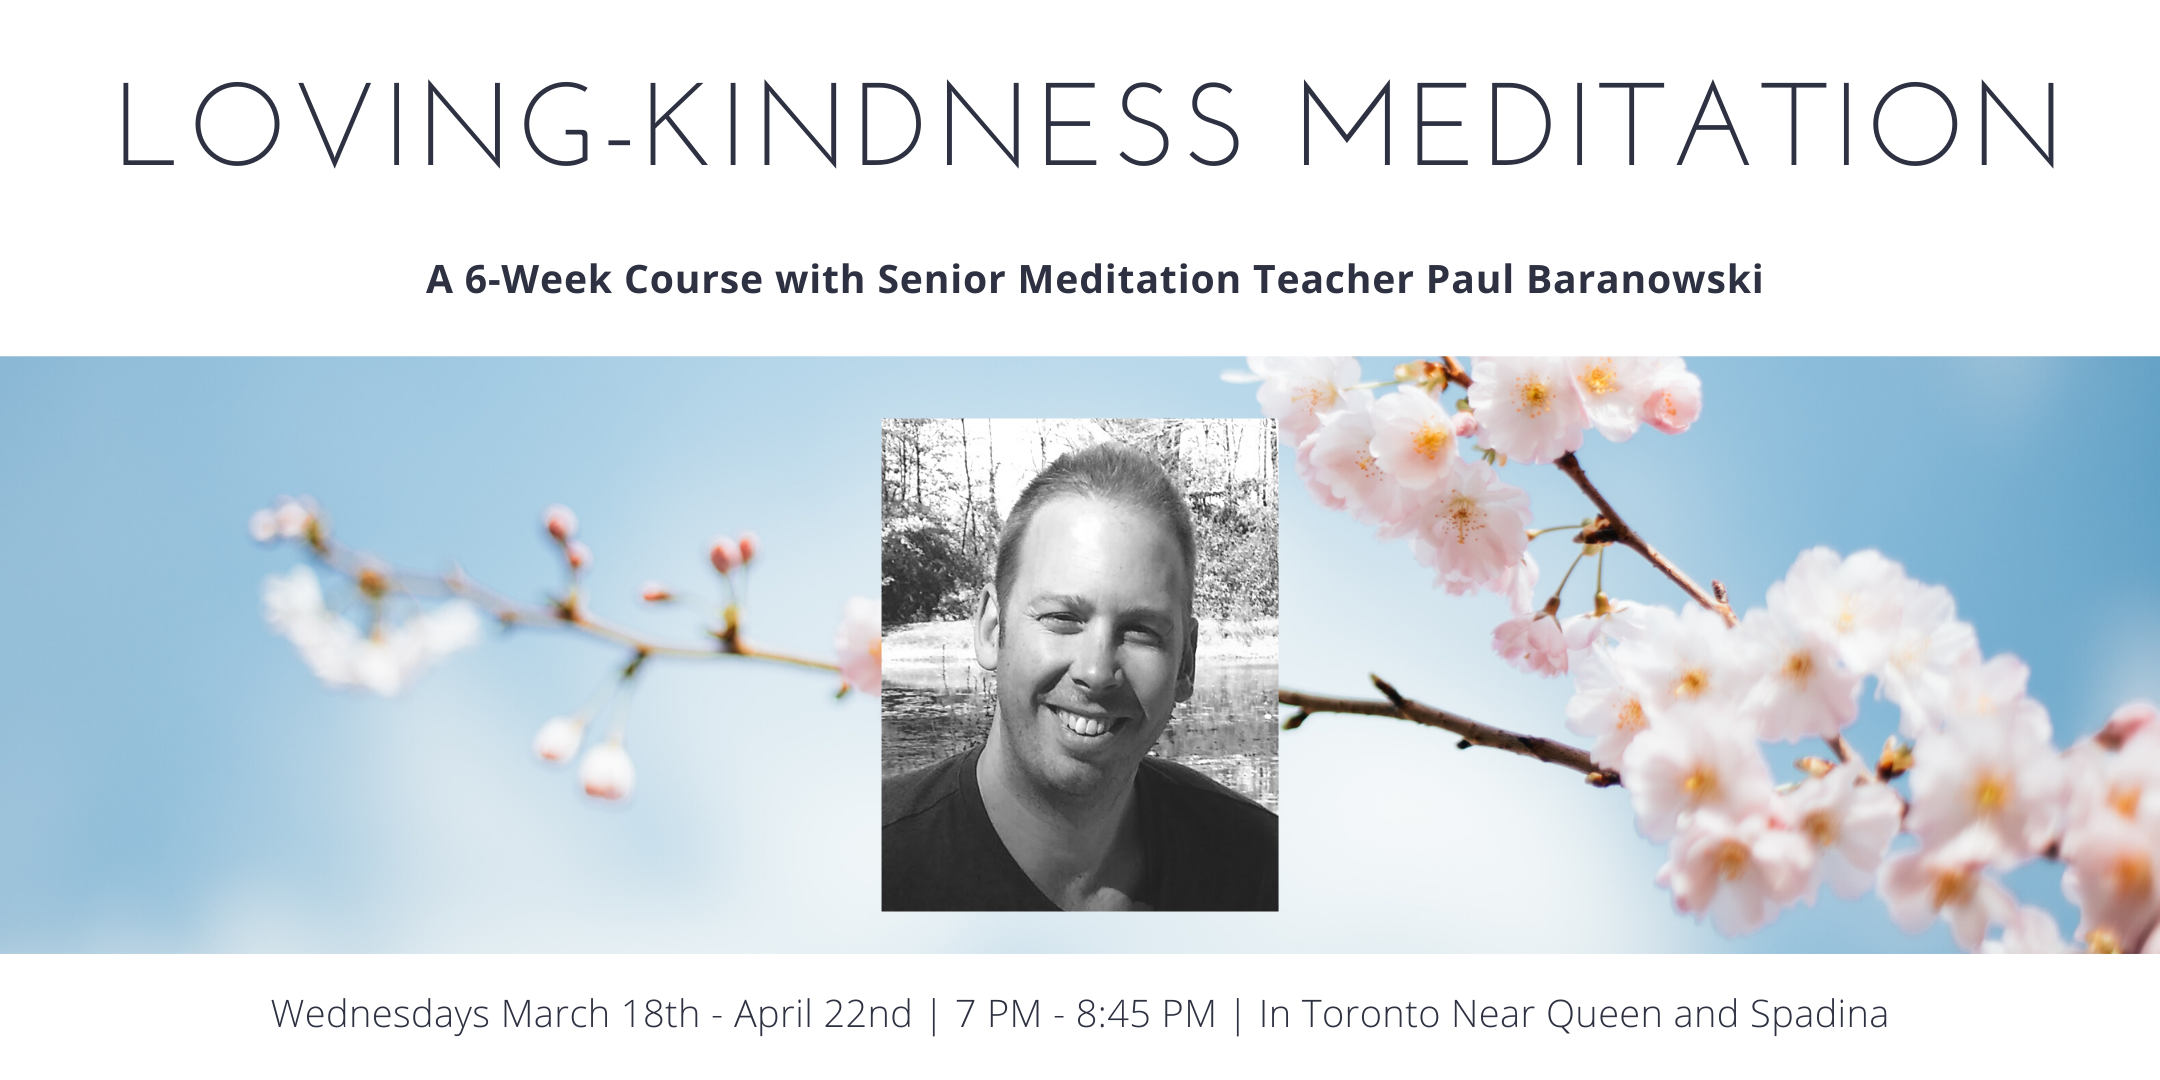 Loving-Kindness Meditation Course with Paul Baranowski